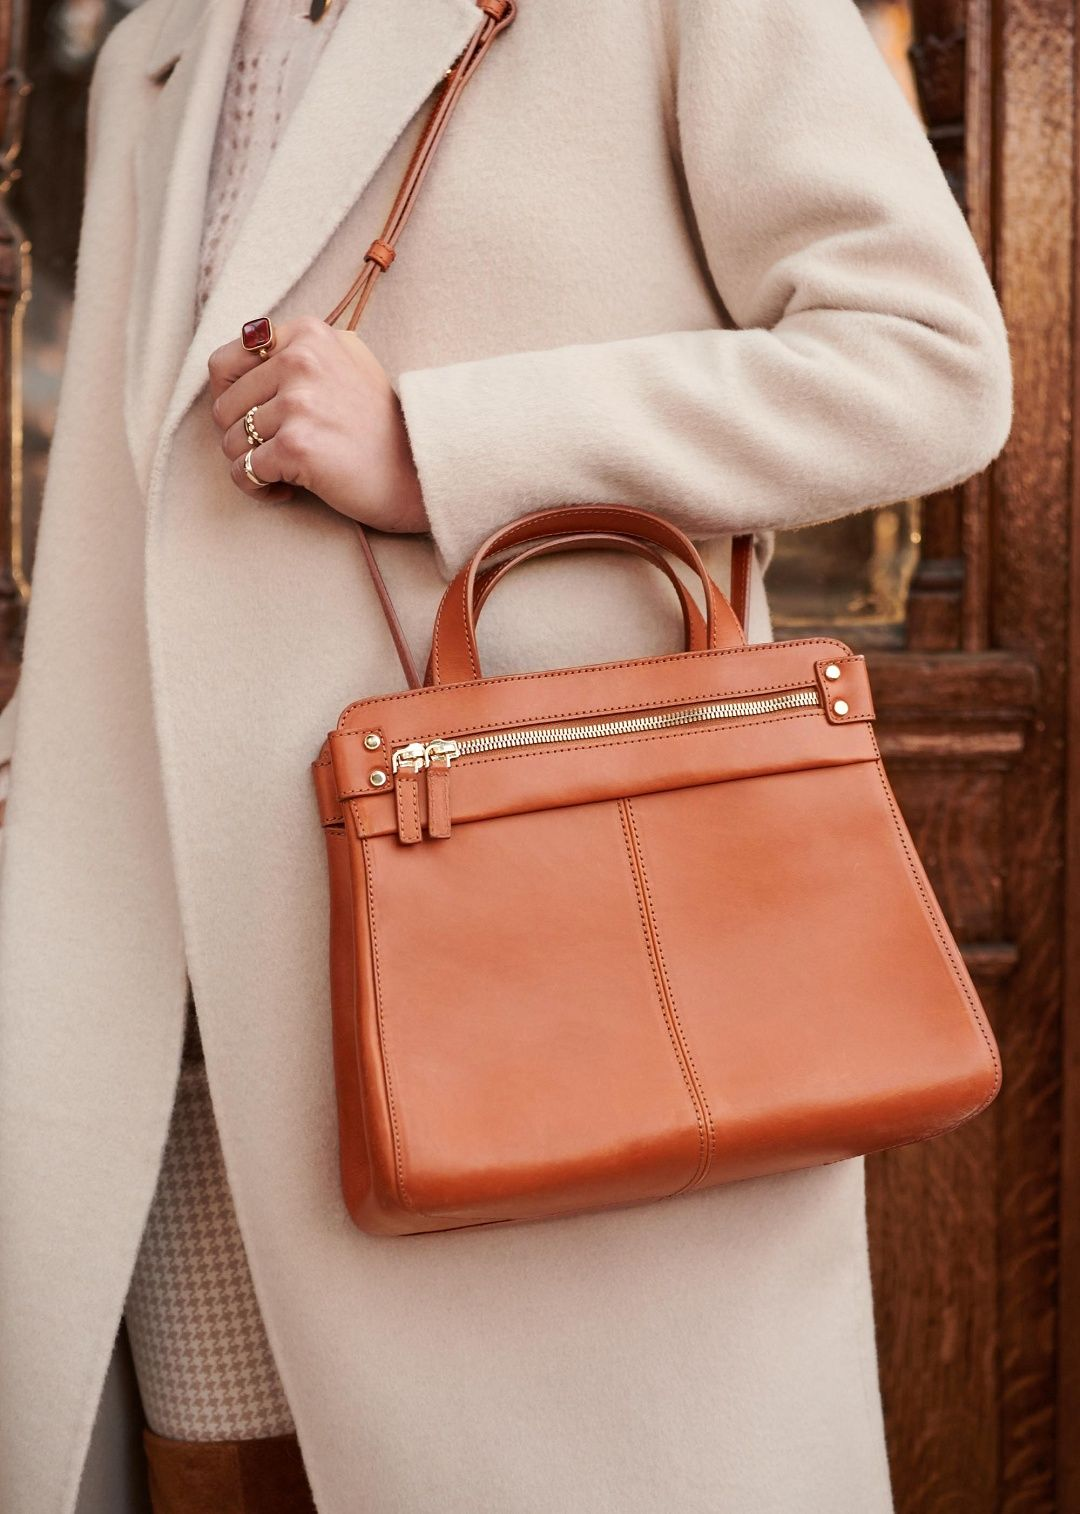 87e9c3b44 Sézane - Small Sam bag | Fashion in 2019 | Fashion, Bags, Tan bag